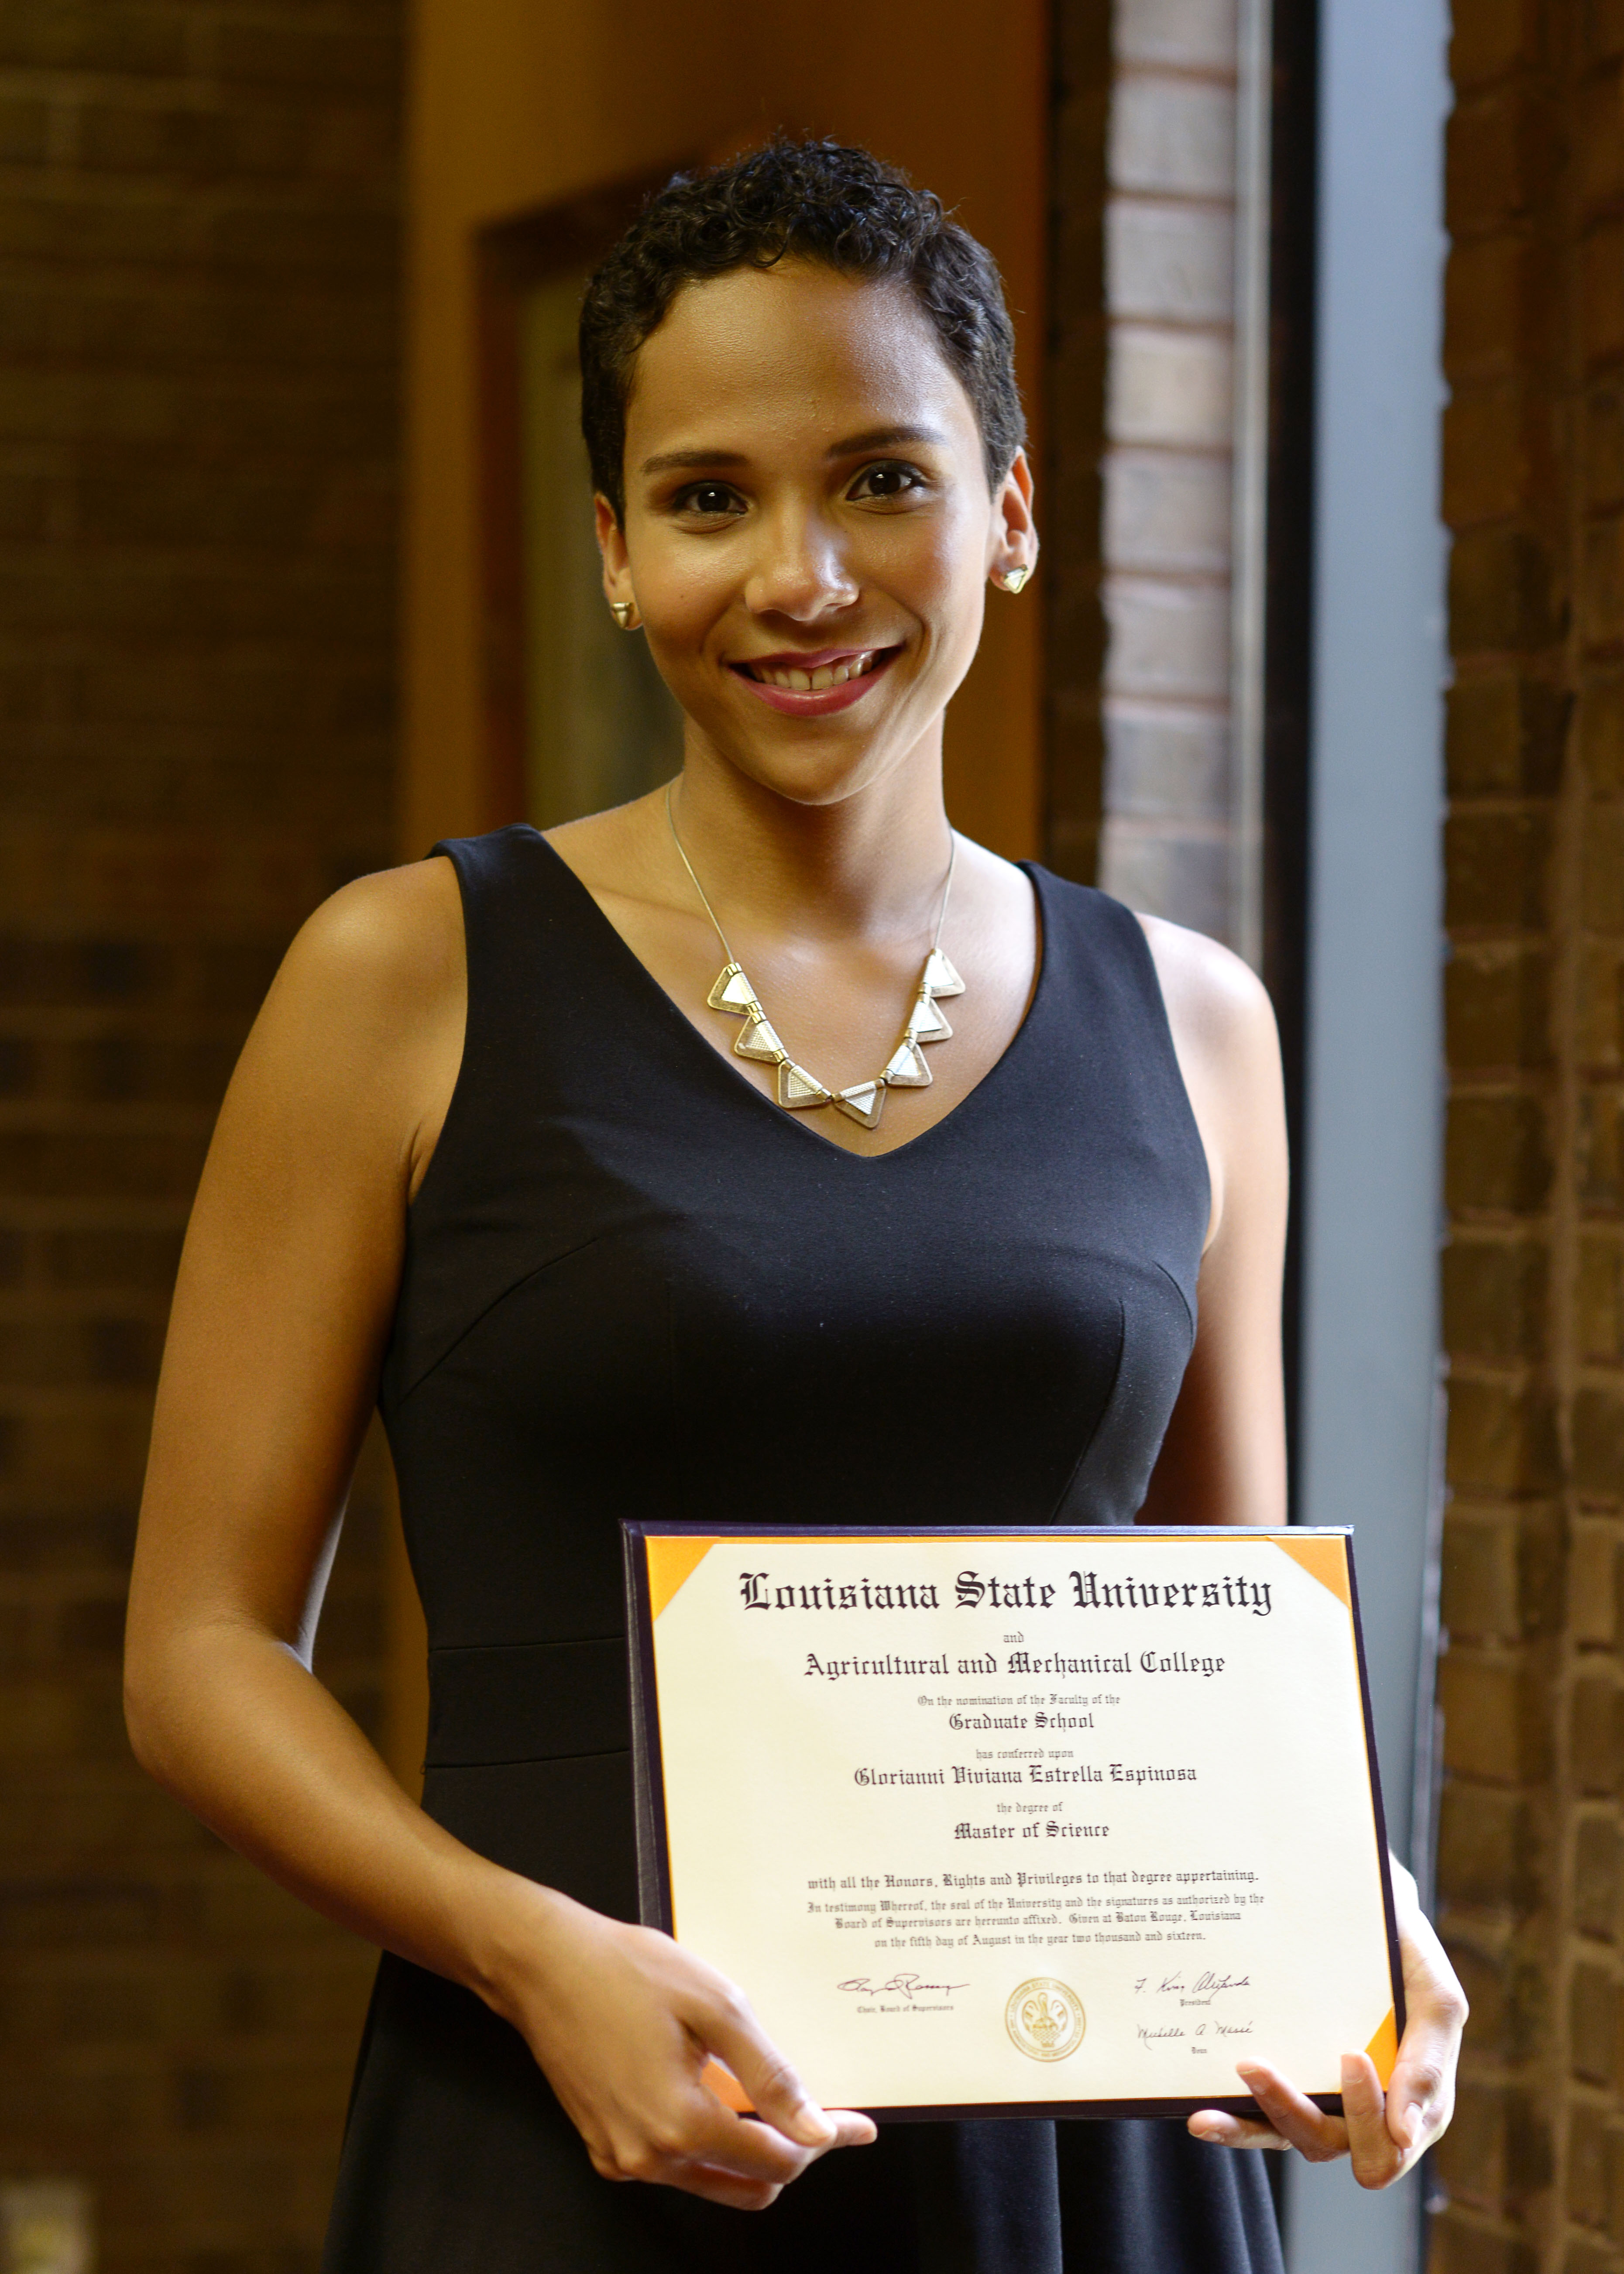 Dominican student graduates from LSU, hopes to improve nutrition in home country